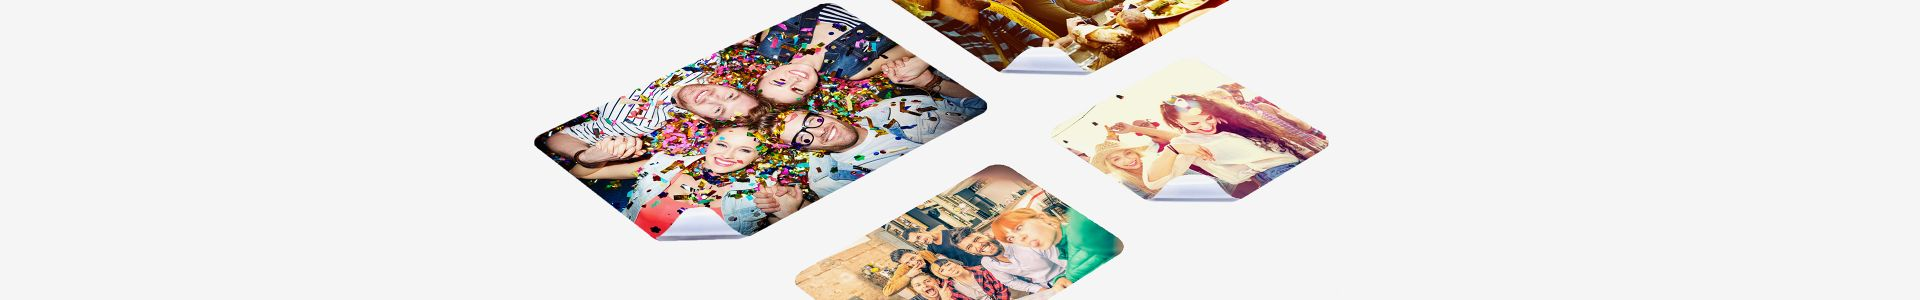 Photo stickers | Camaloon